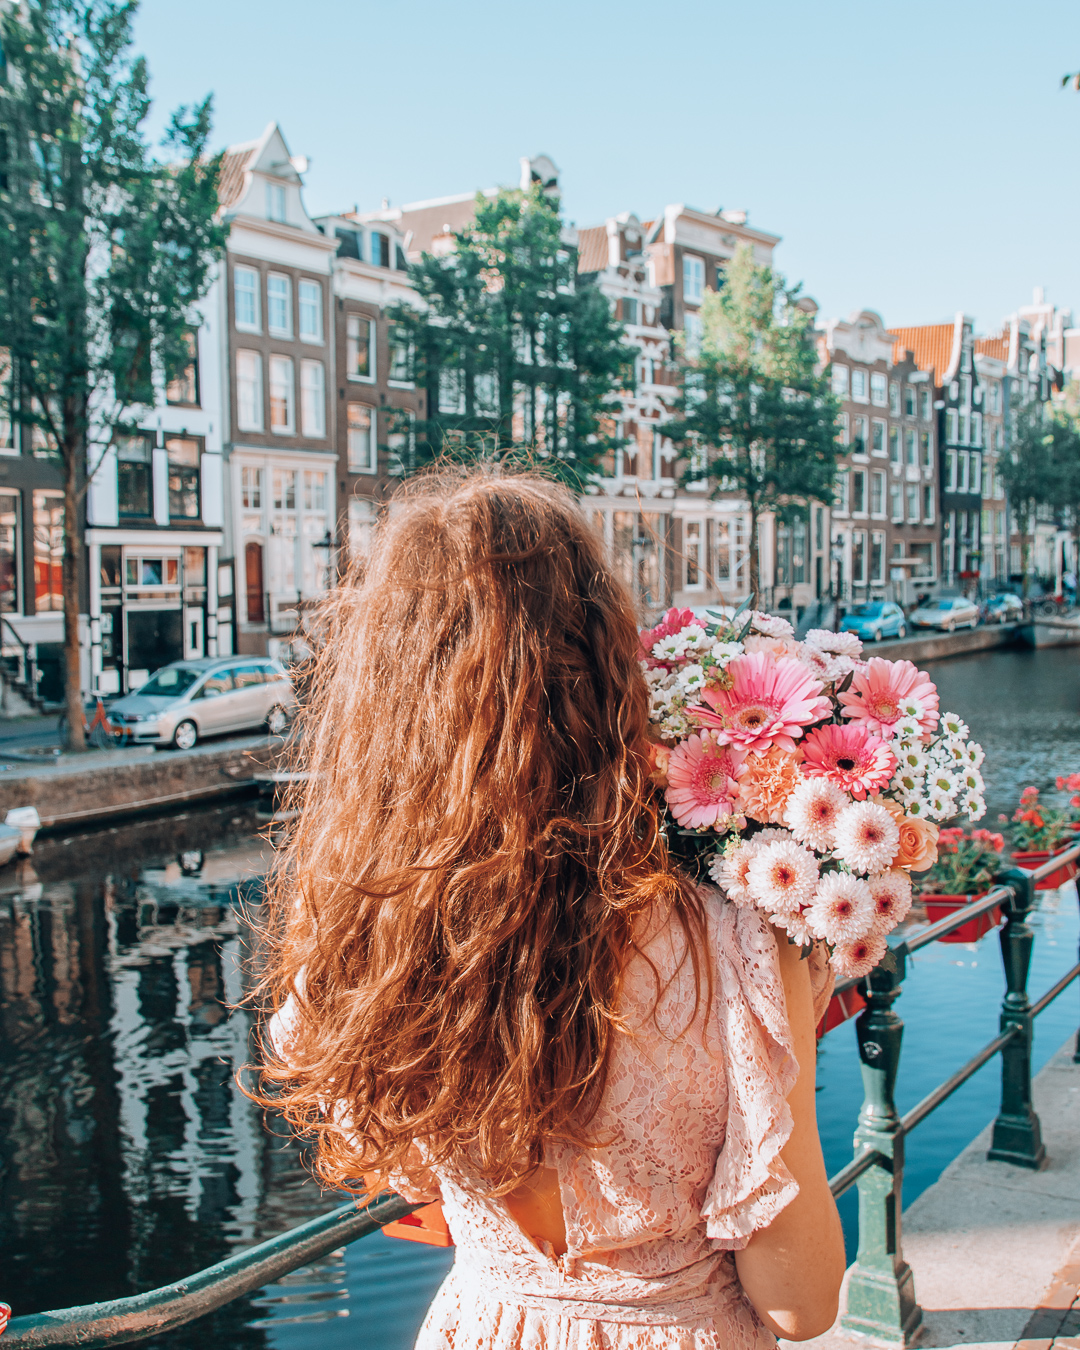 Canal in Amsterdam and a girl